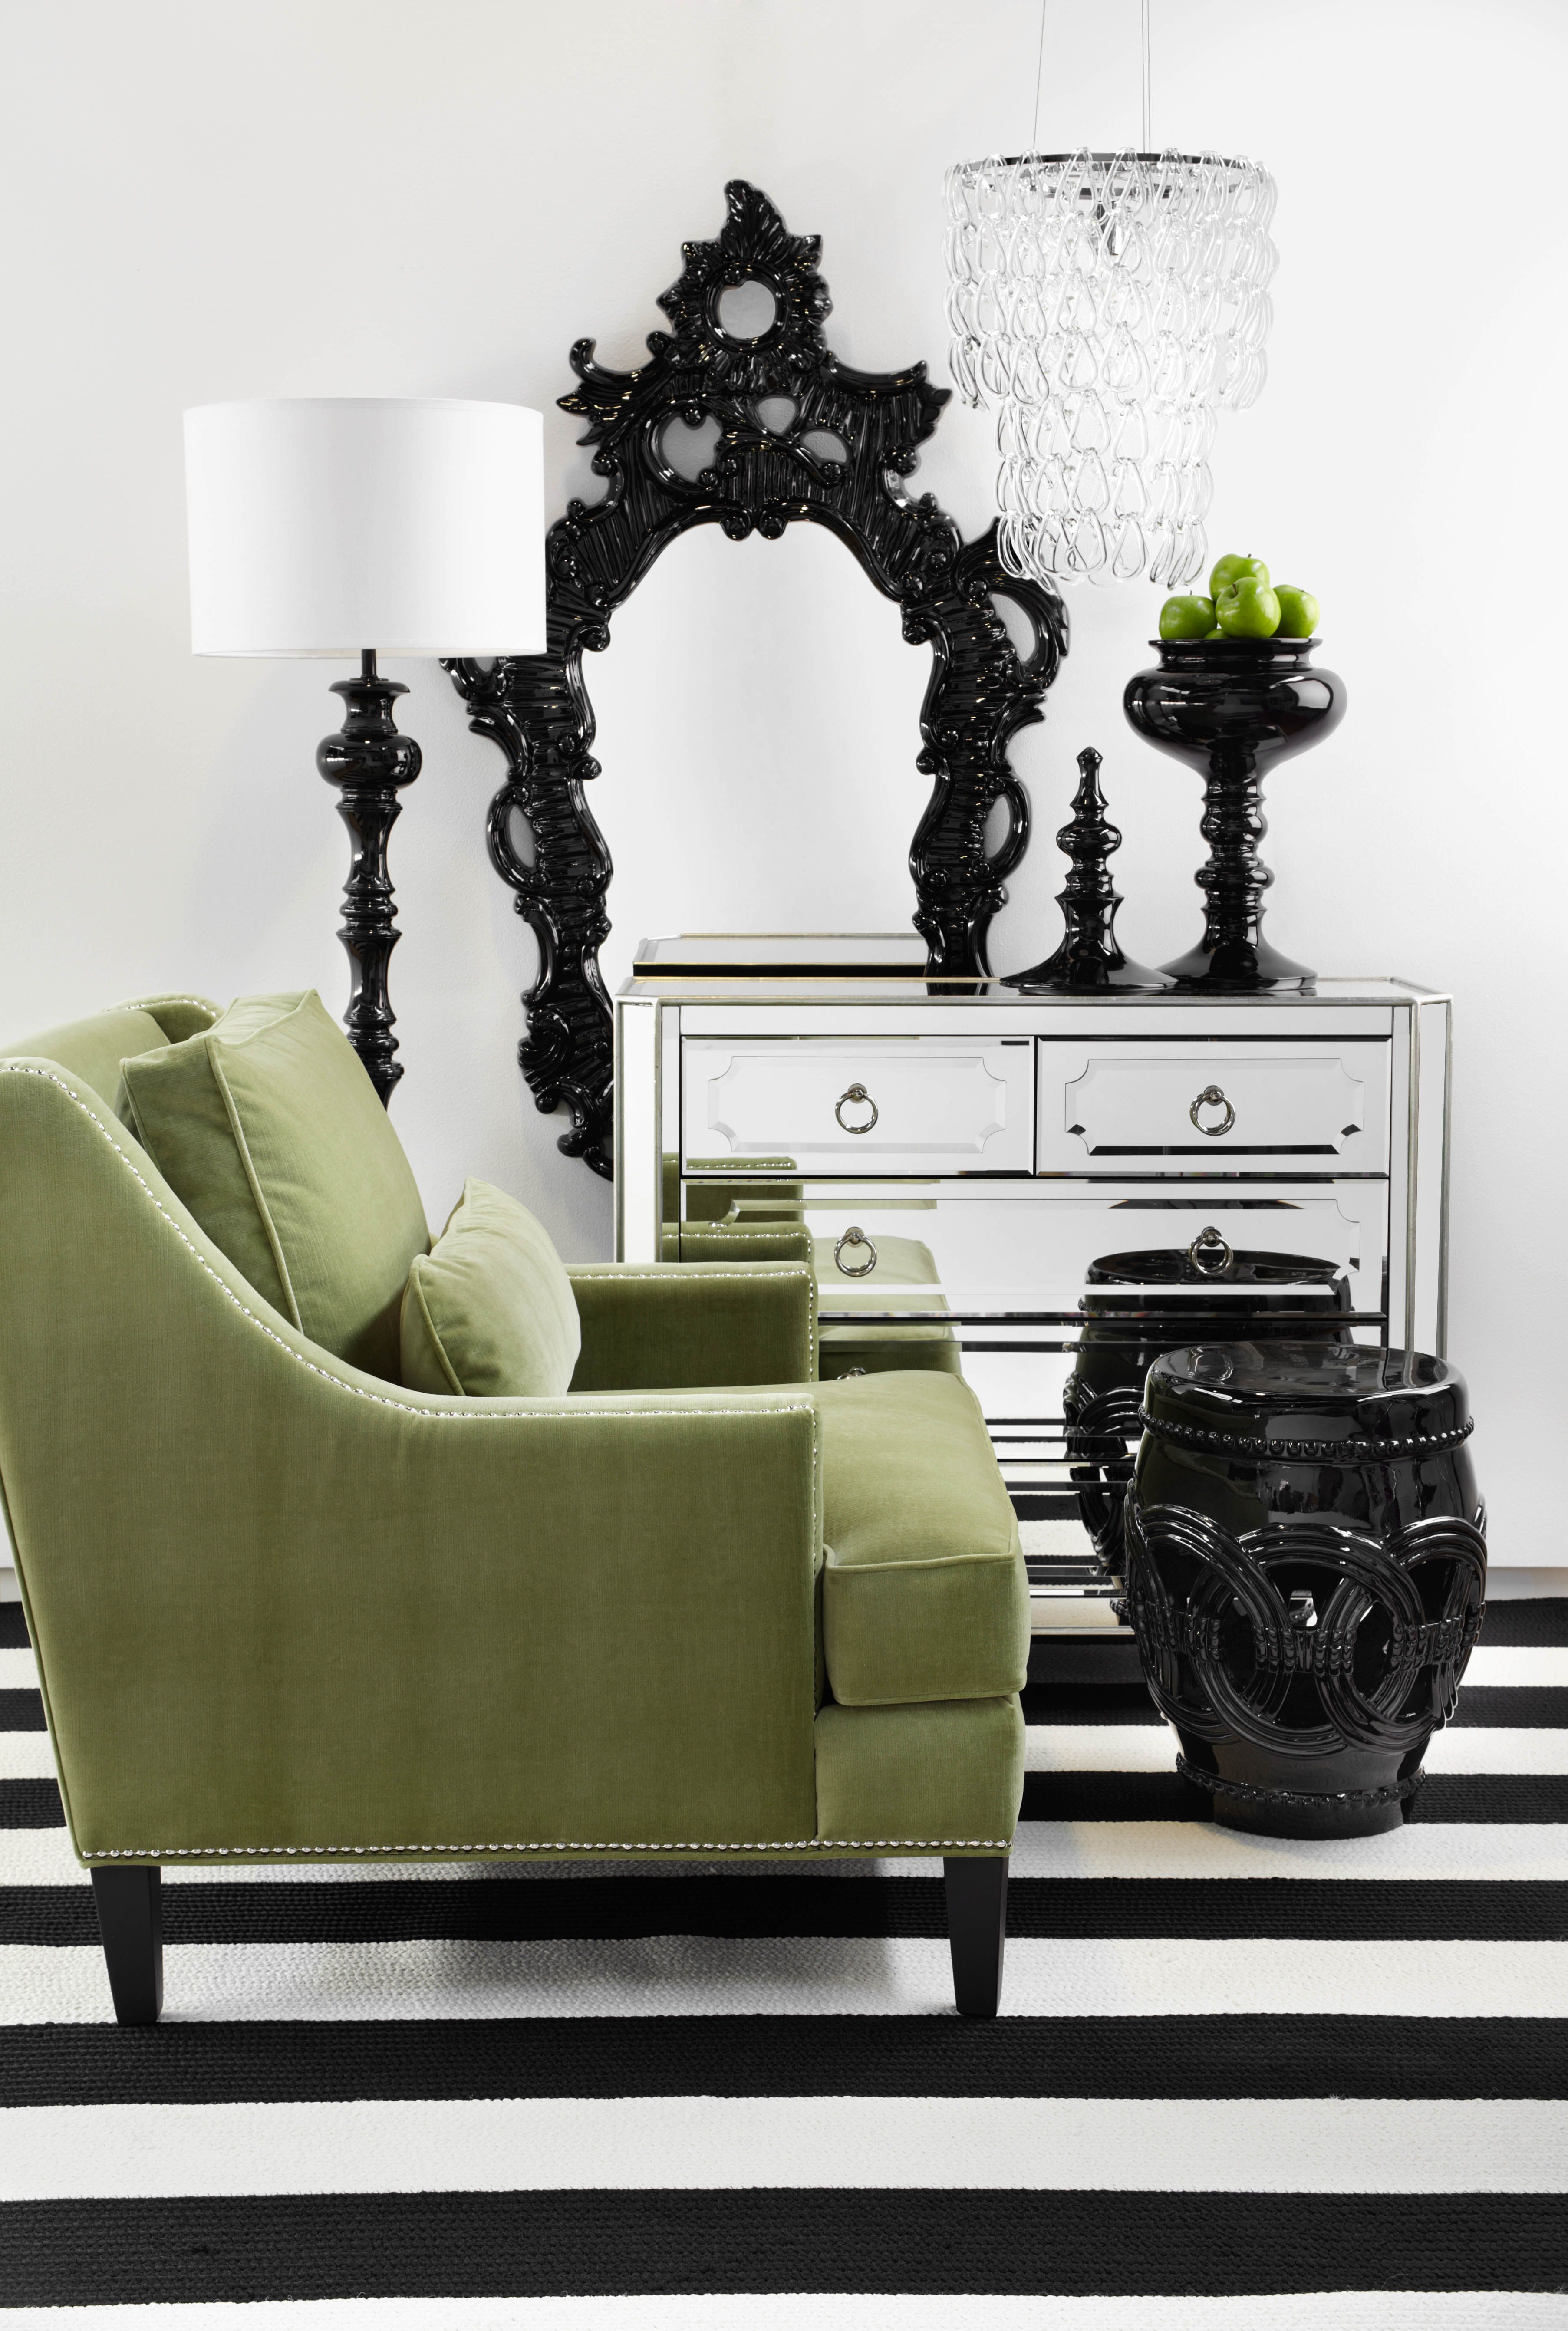 A Splash Of Apple Green To A Fresh Black And White Room Is An Electrifying Color Combination Home Decor Black And White Living Room Living Room White